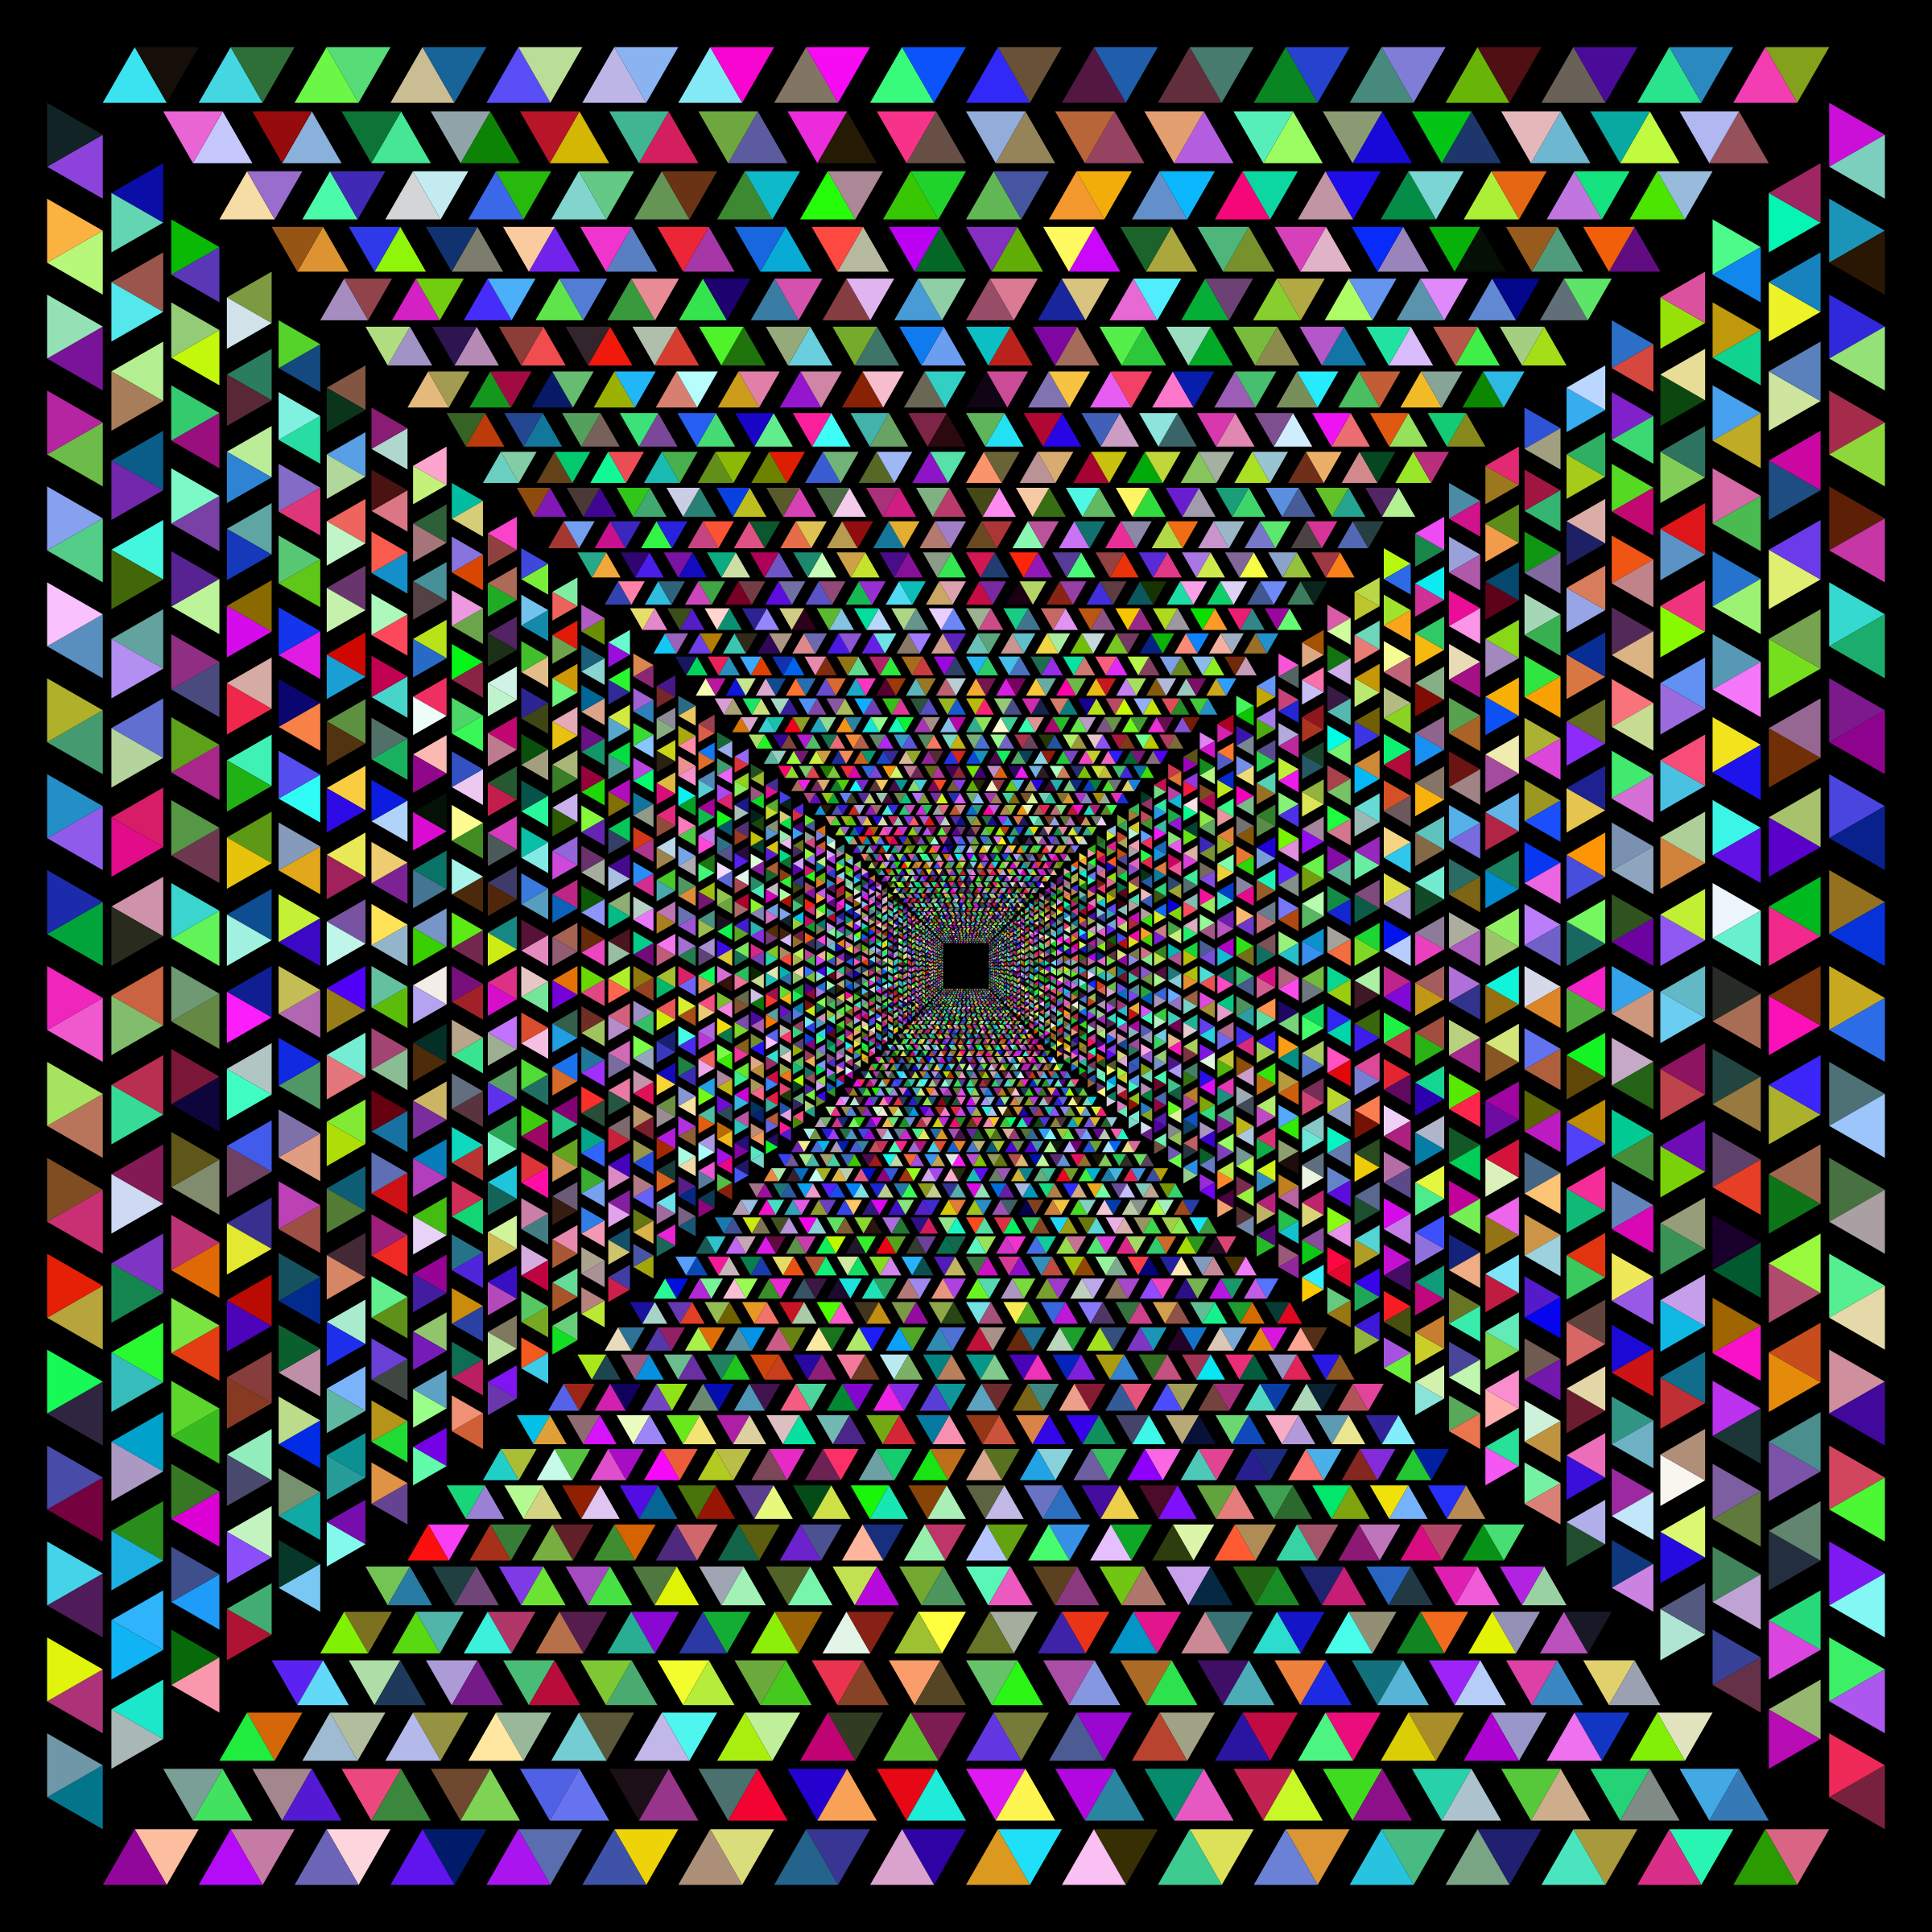 Hypnotic Triangular Vortex 3 by GDJ